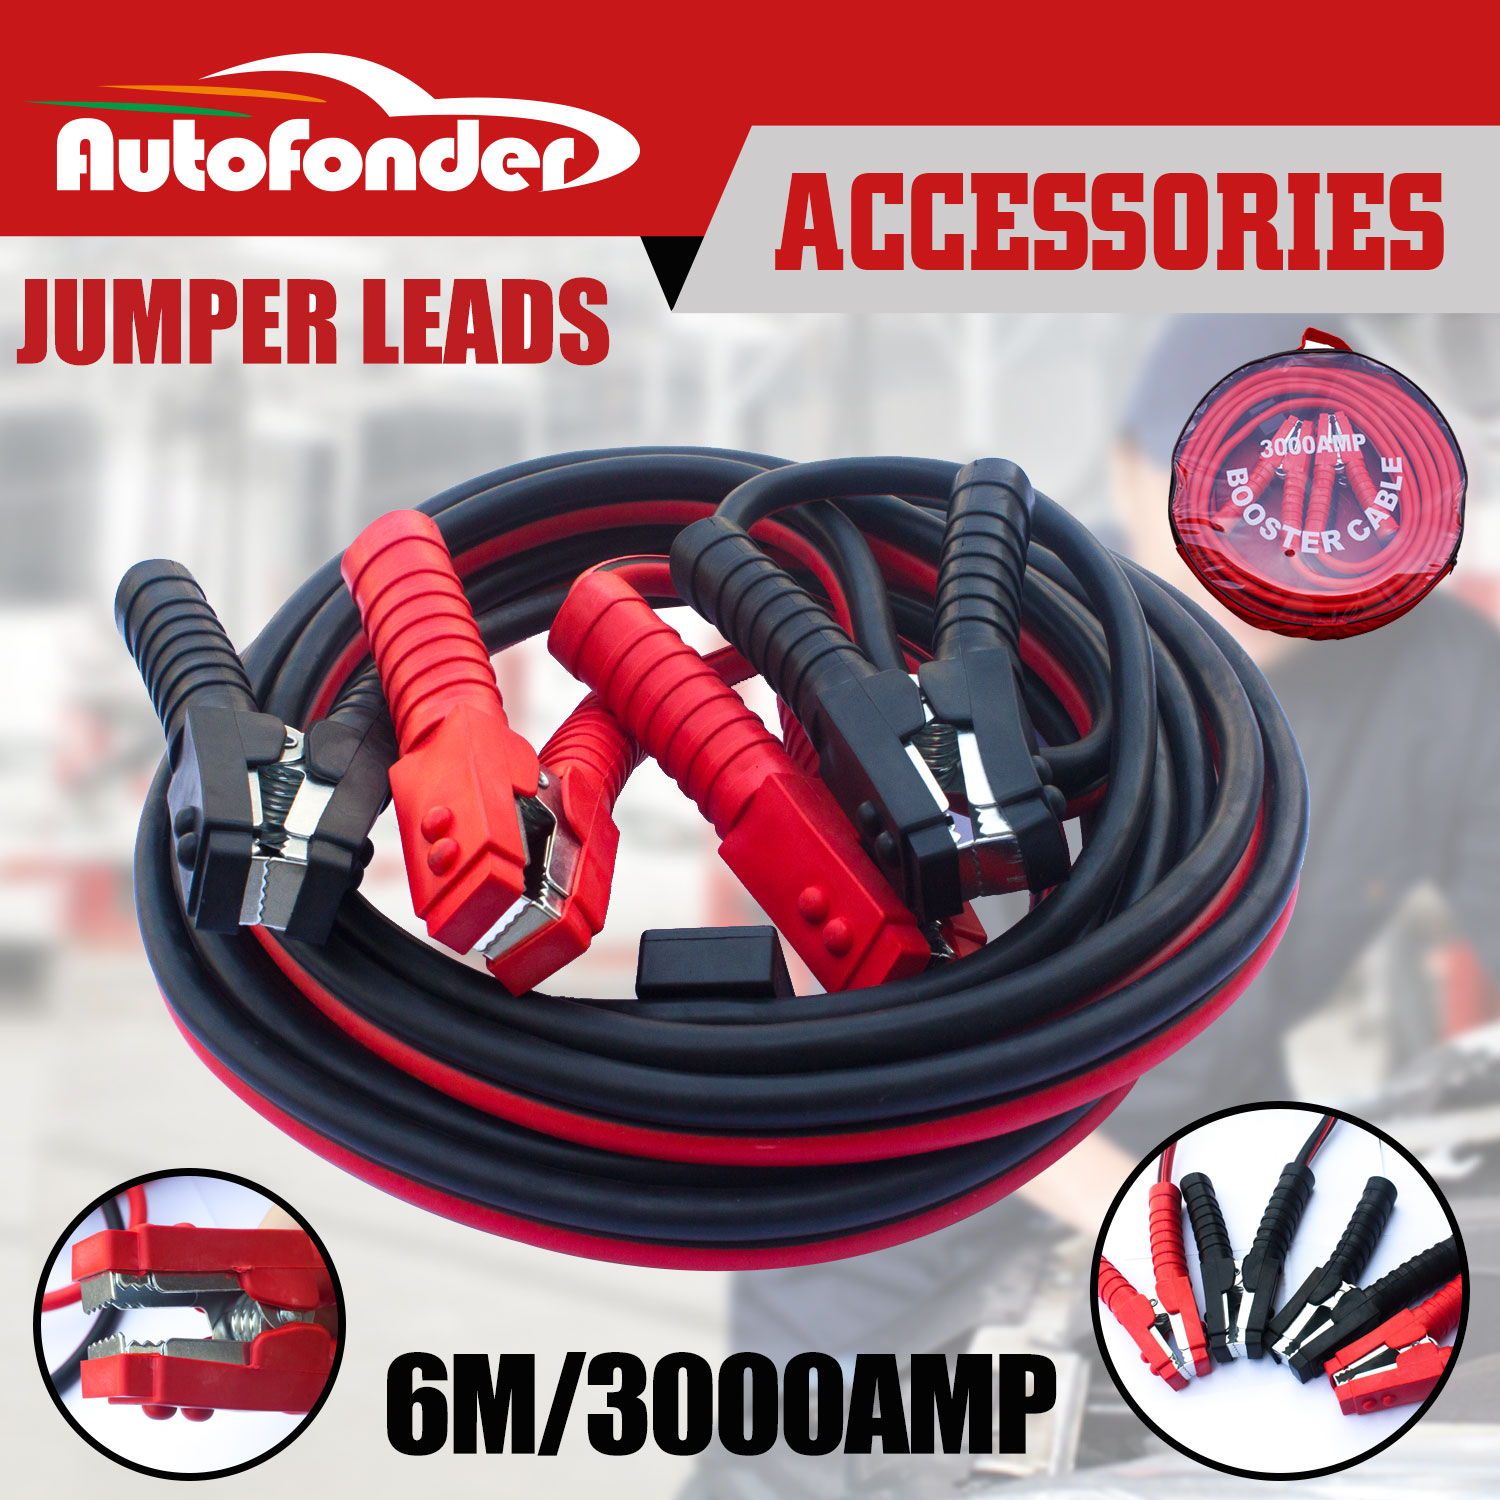 3000 AMP Jumper 6M Cable Booster Cable